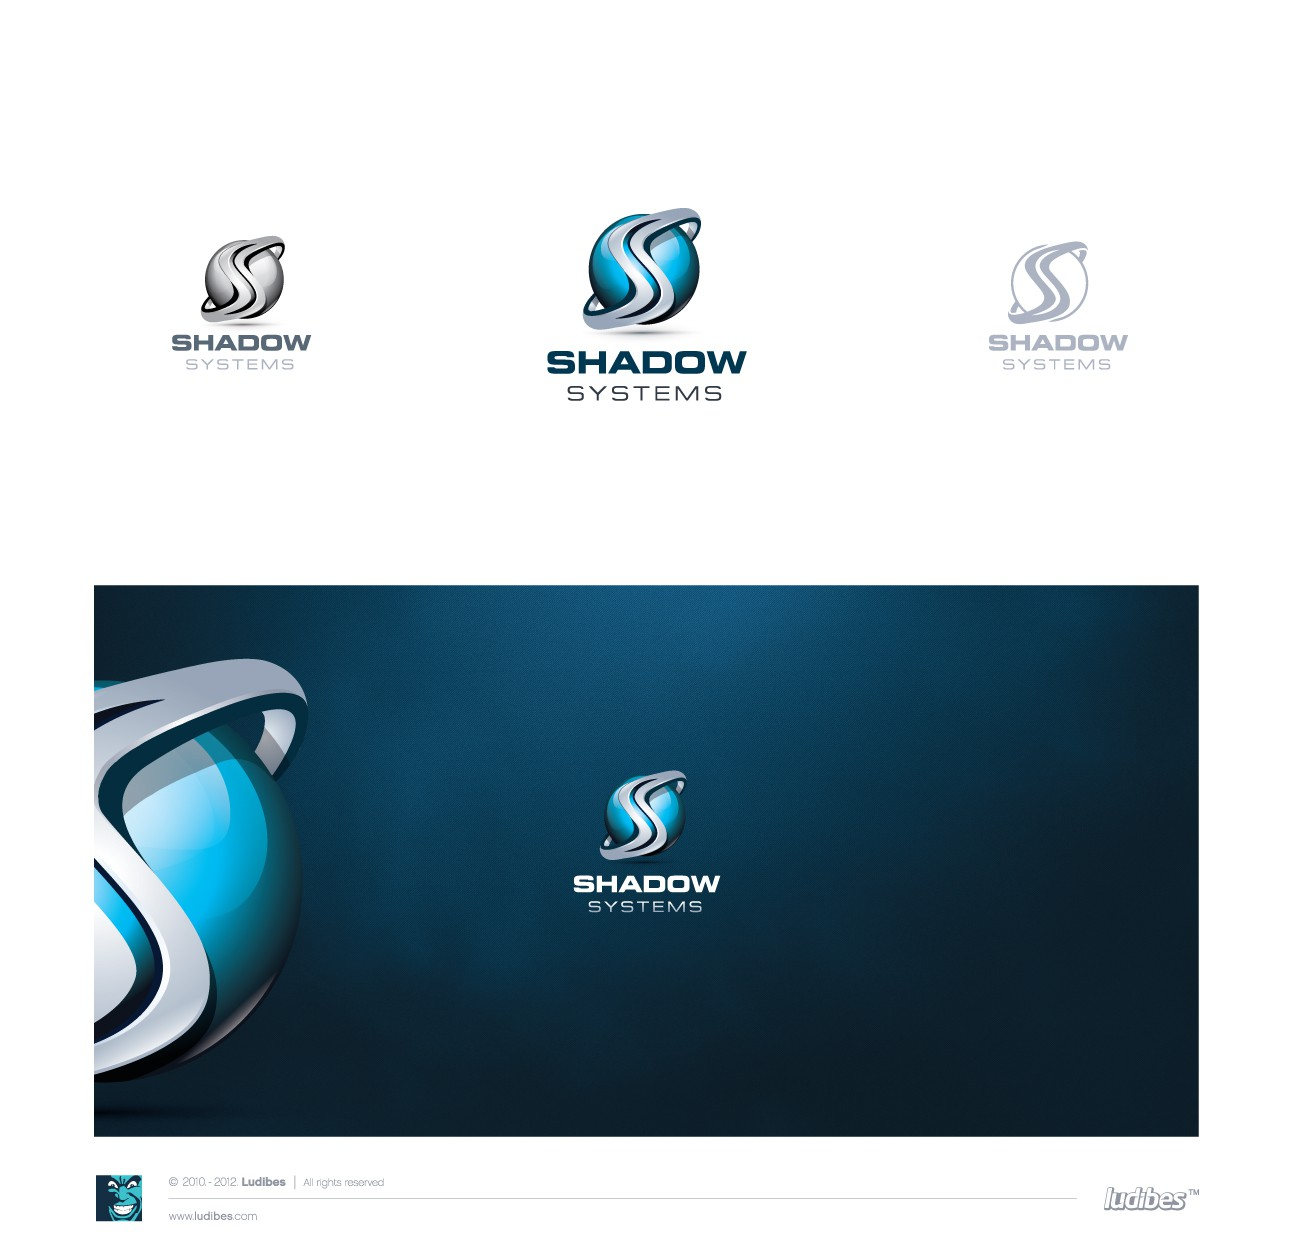 New logo wanted for Shadow Systems